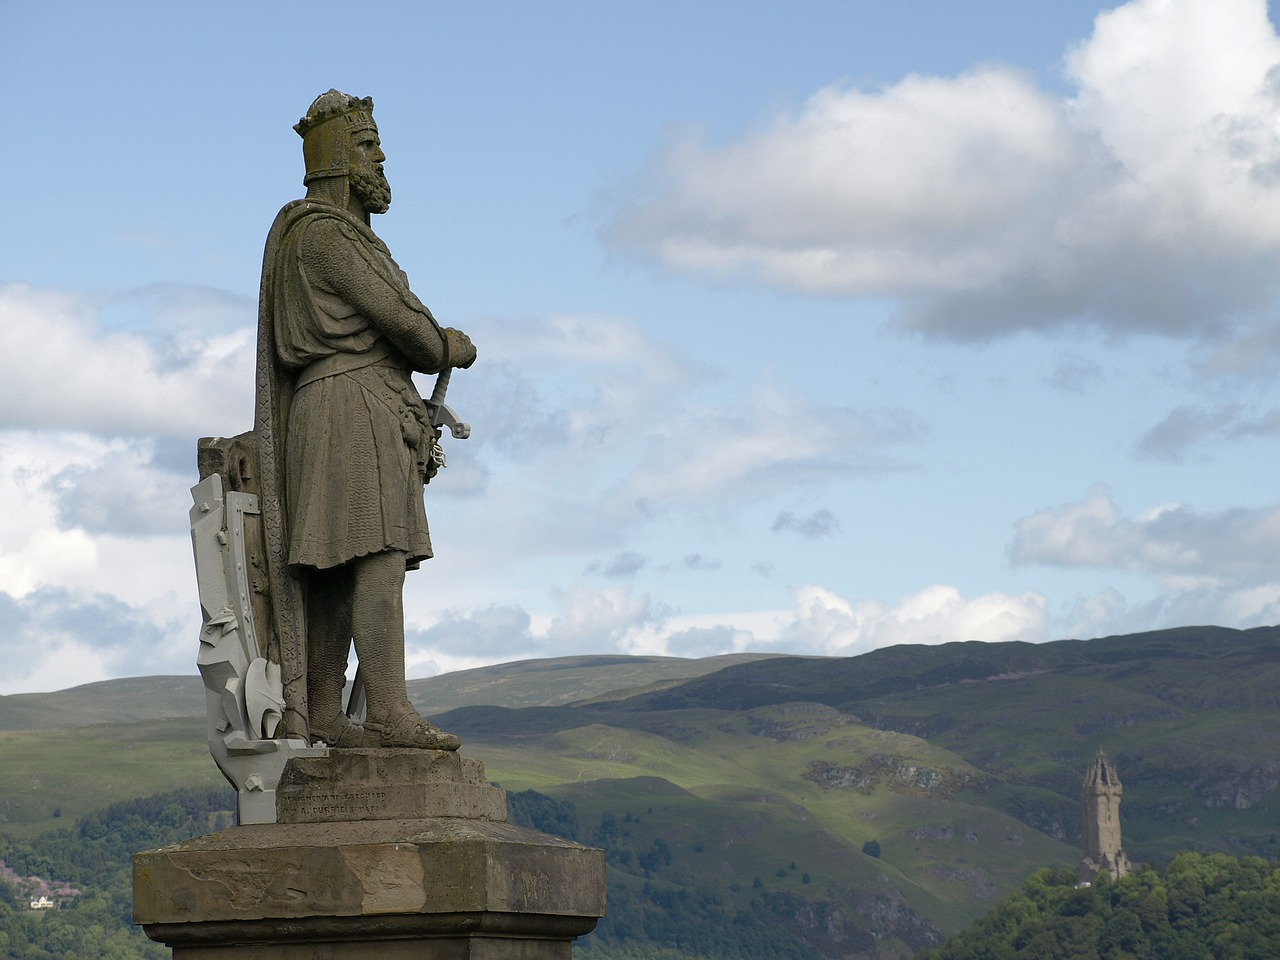 stirling scotland attractions - wallace monument from stirling castle